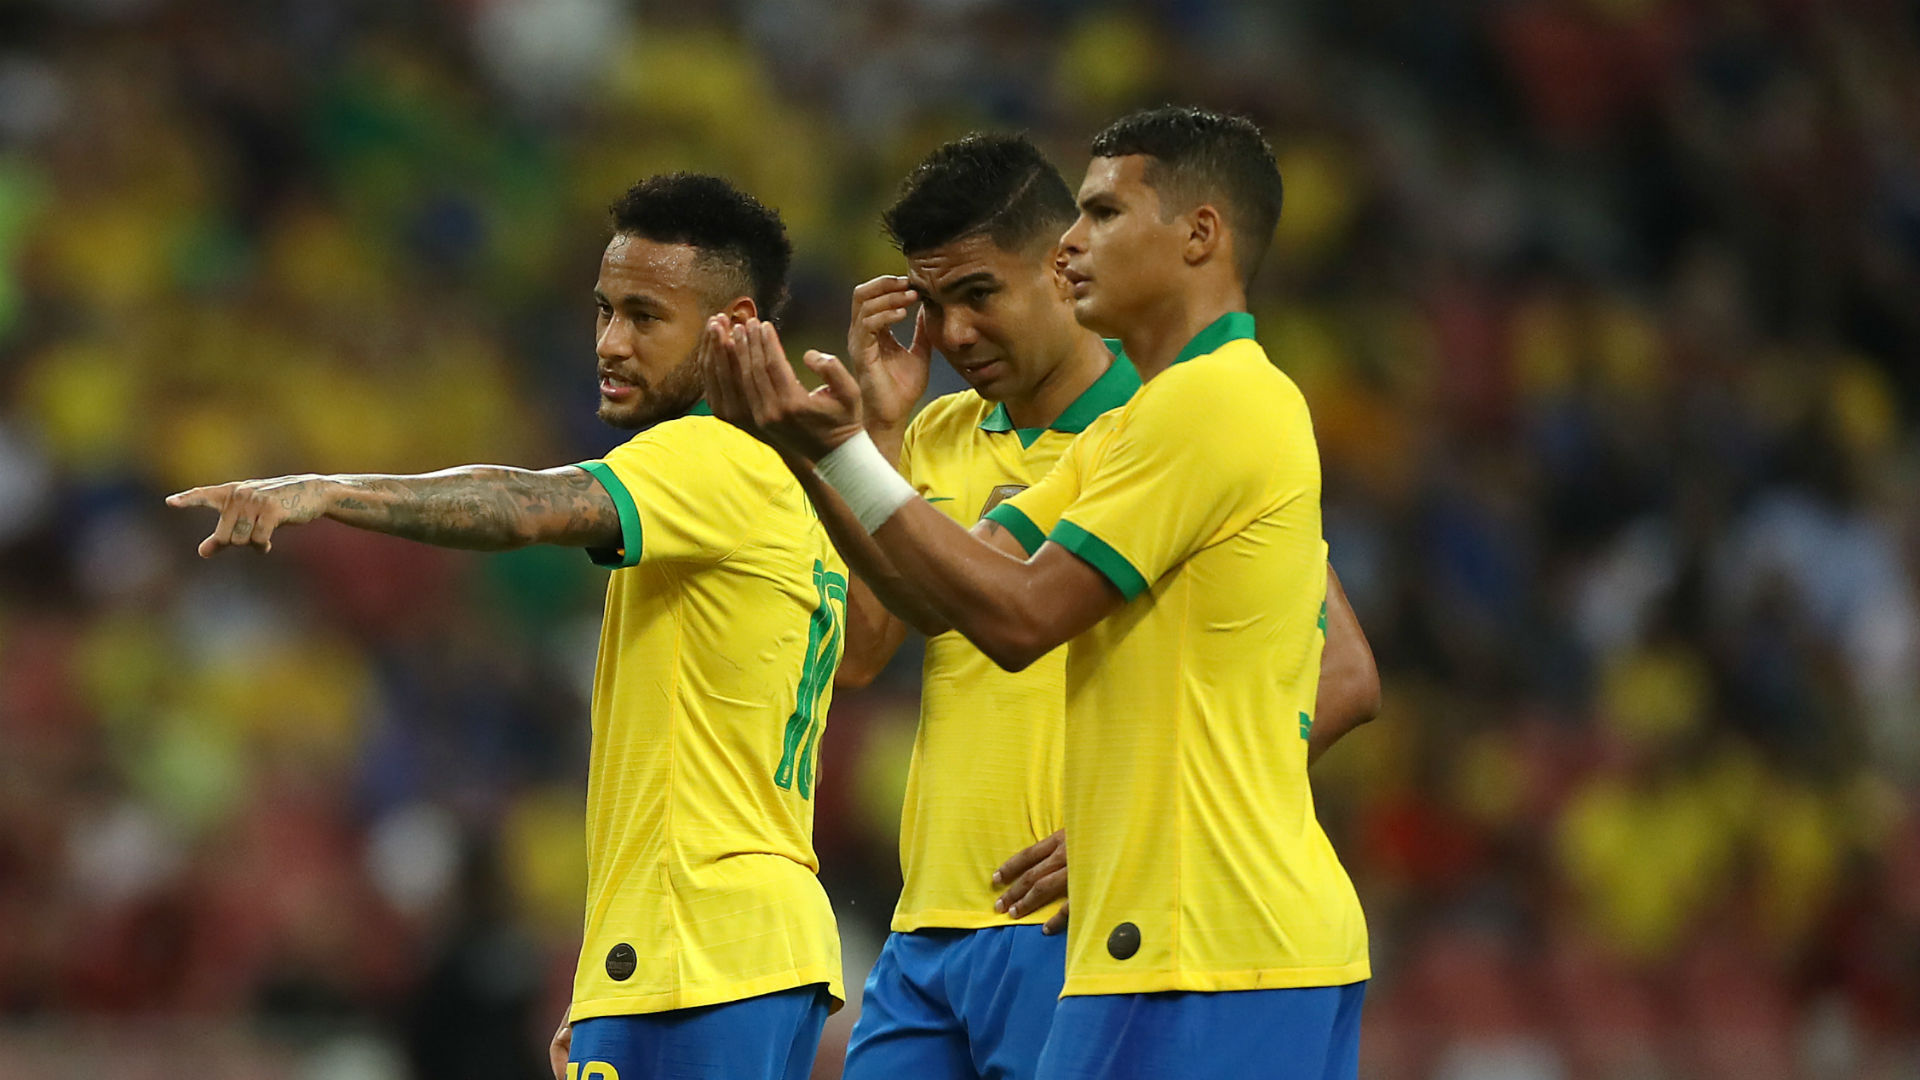 Thiago Silva after Brazil draw: If I said I wasn't bothered, I'd be lying